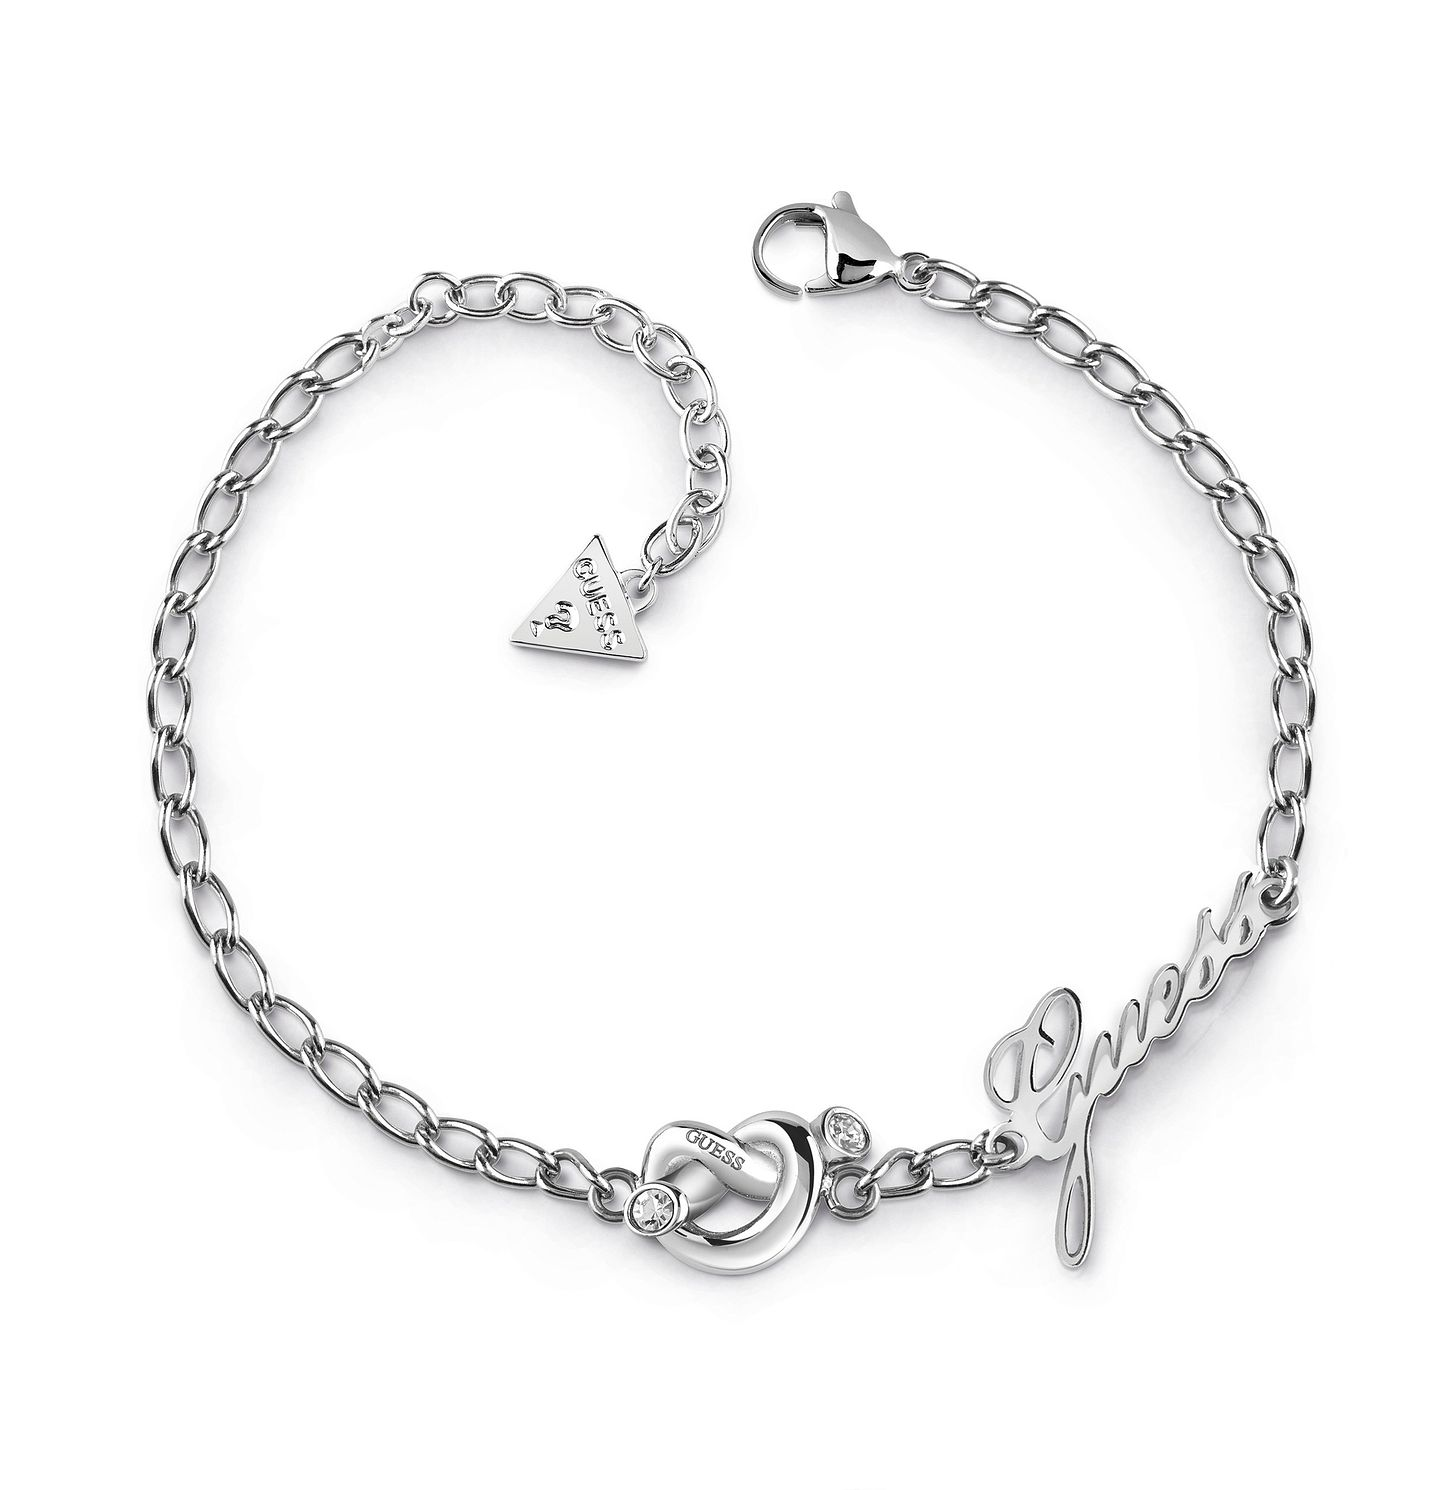 Guess Stainless Steel Swarovski Crystal Knot Bracelet - Product number 5921430